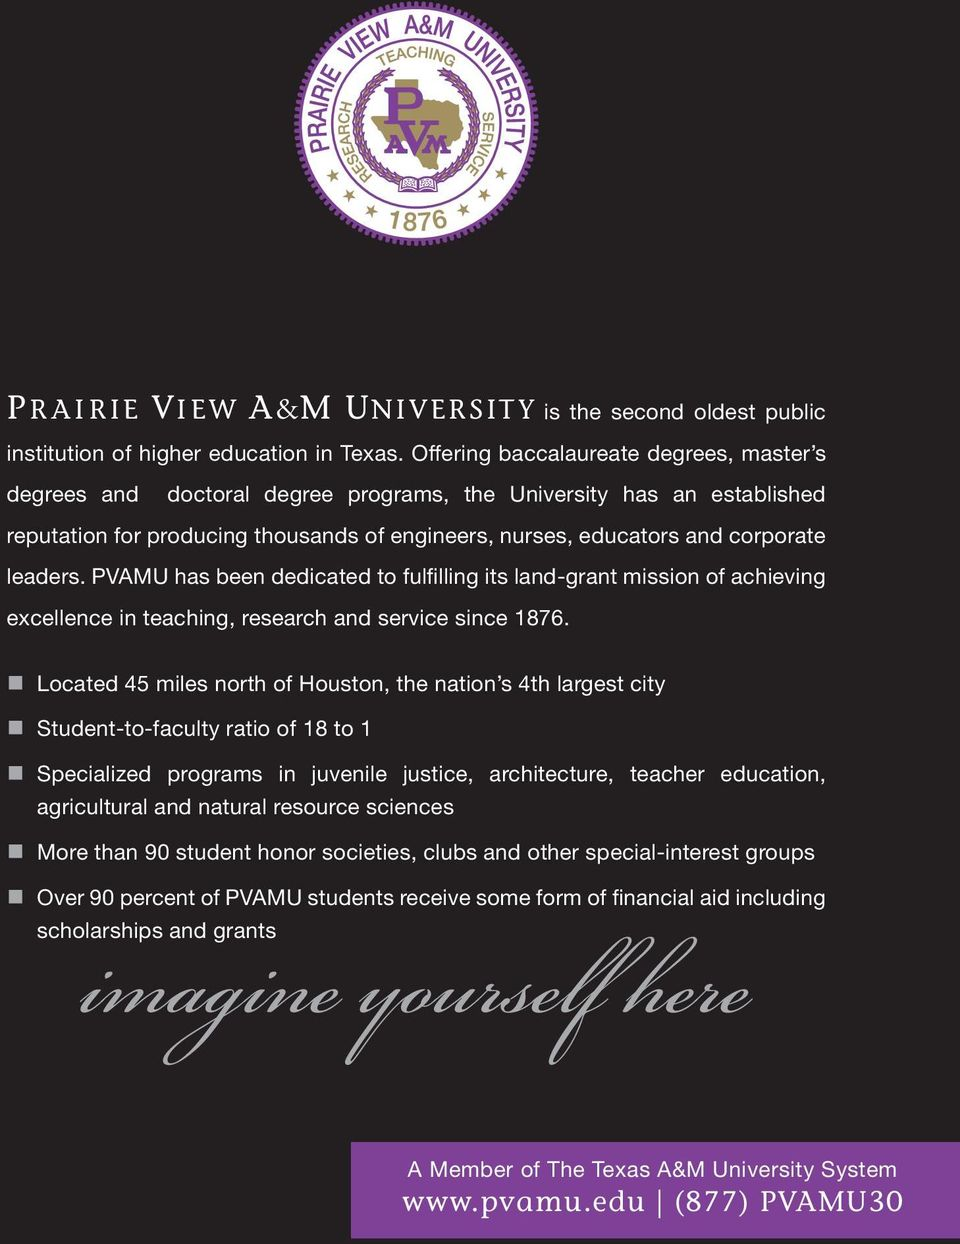 leaders. PVAMU has been dedicated to fulfilling its land-grant mission of achieving excellence in teaching, research and service since 1876.